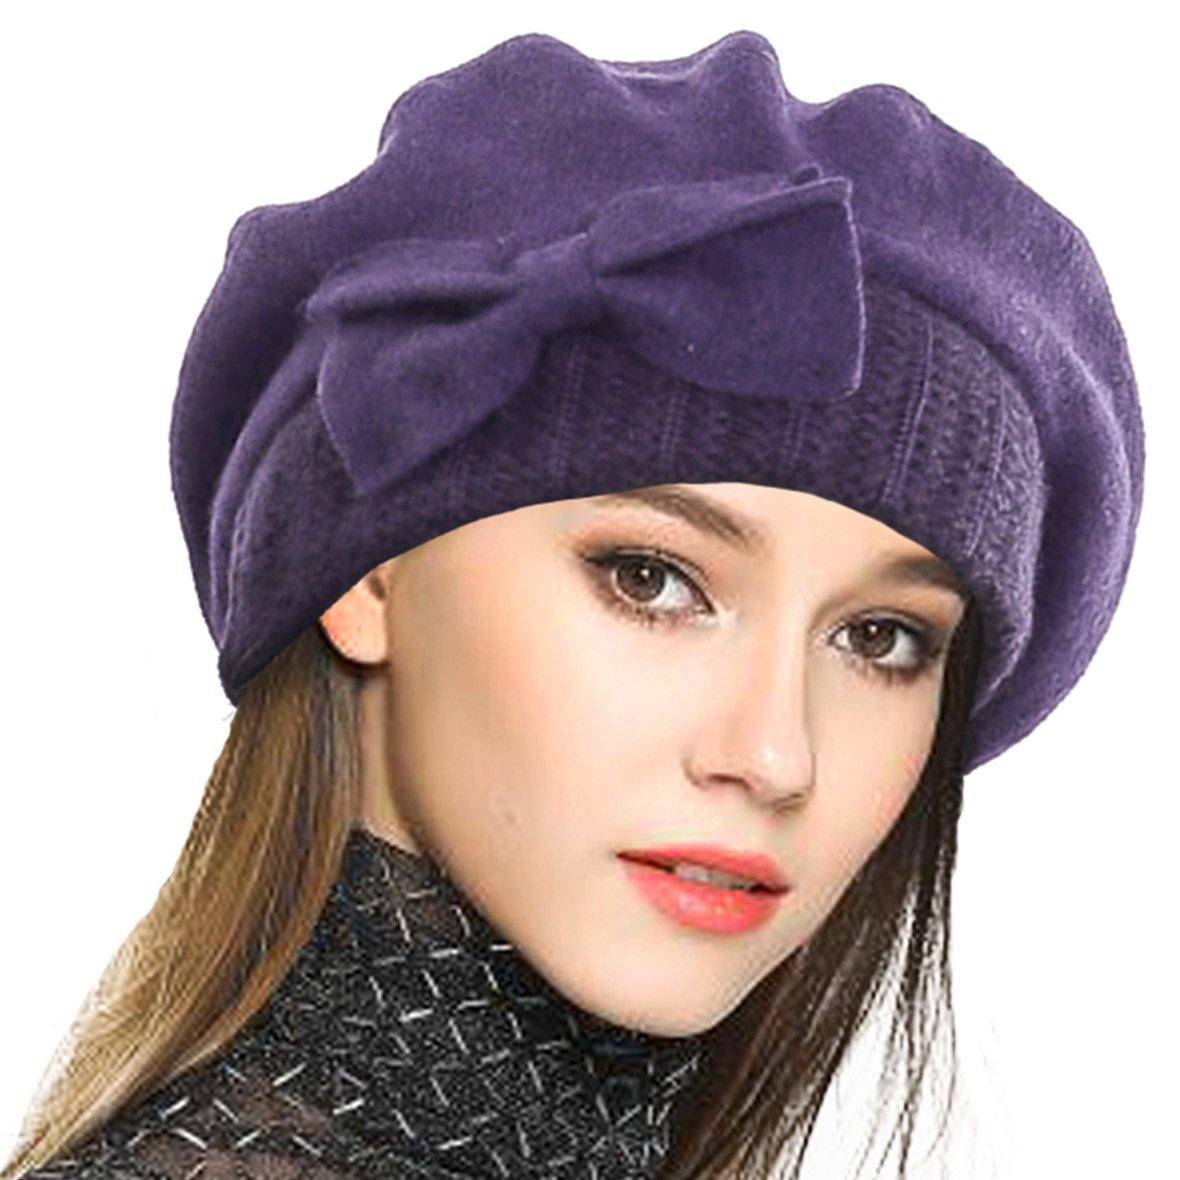 VECRY Lady French Beret 100% Wool Beret Floral Dress Beanie Winter Hat  product image e82373c75cca